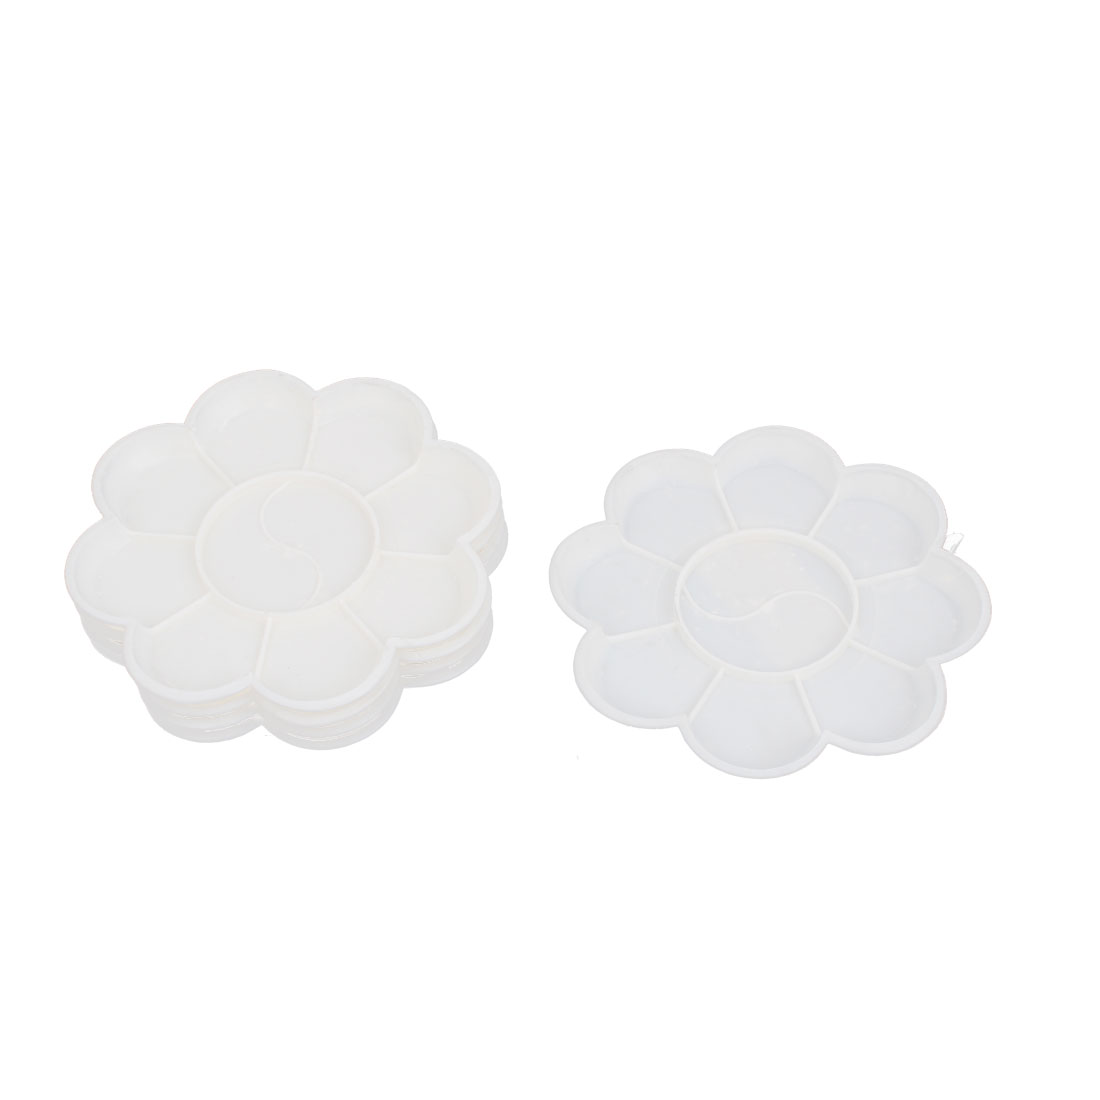 Petal Shaped 12cm Dia 10 Compartments Watercolor Paint Tray Mixing Palette